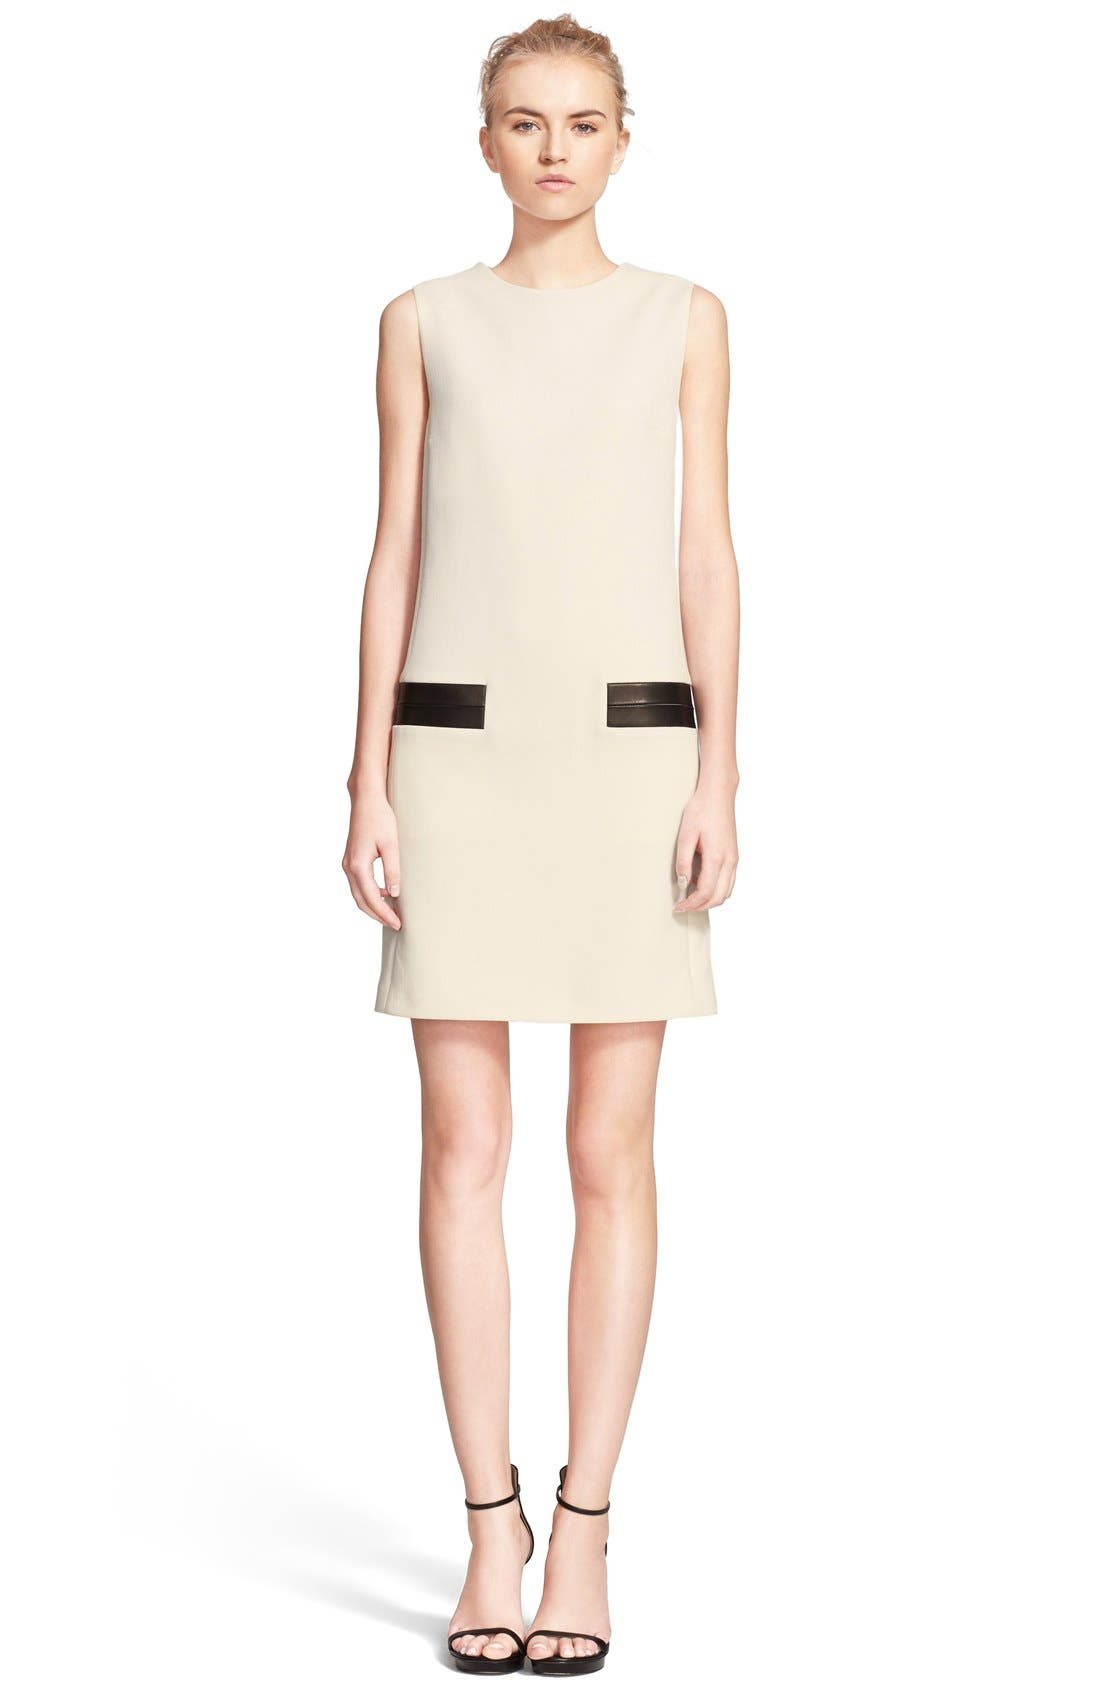 Alternate Image 1 Selected - Michael Kors Leather Trim Stretch Wool Shift Dress